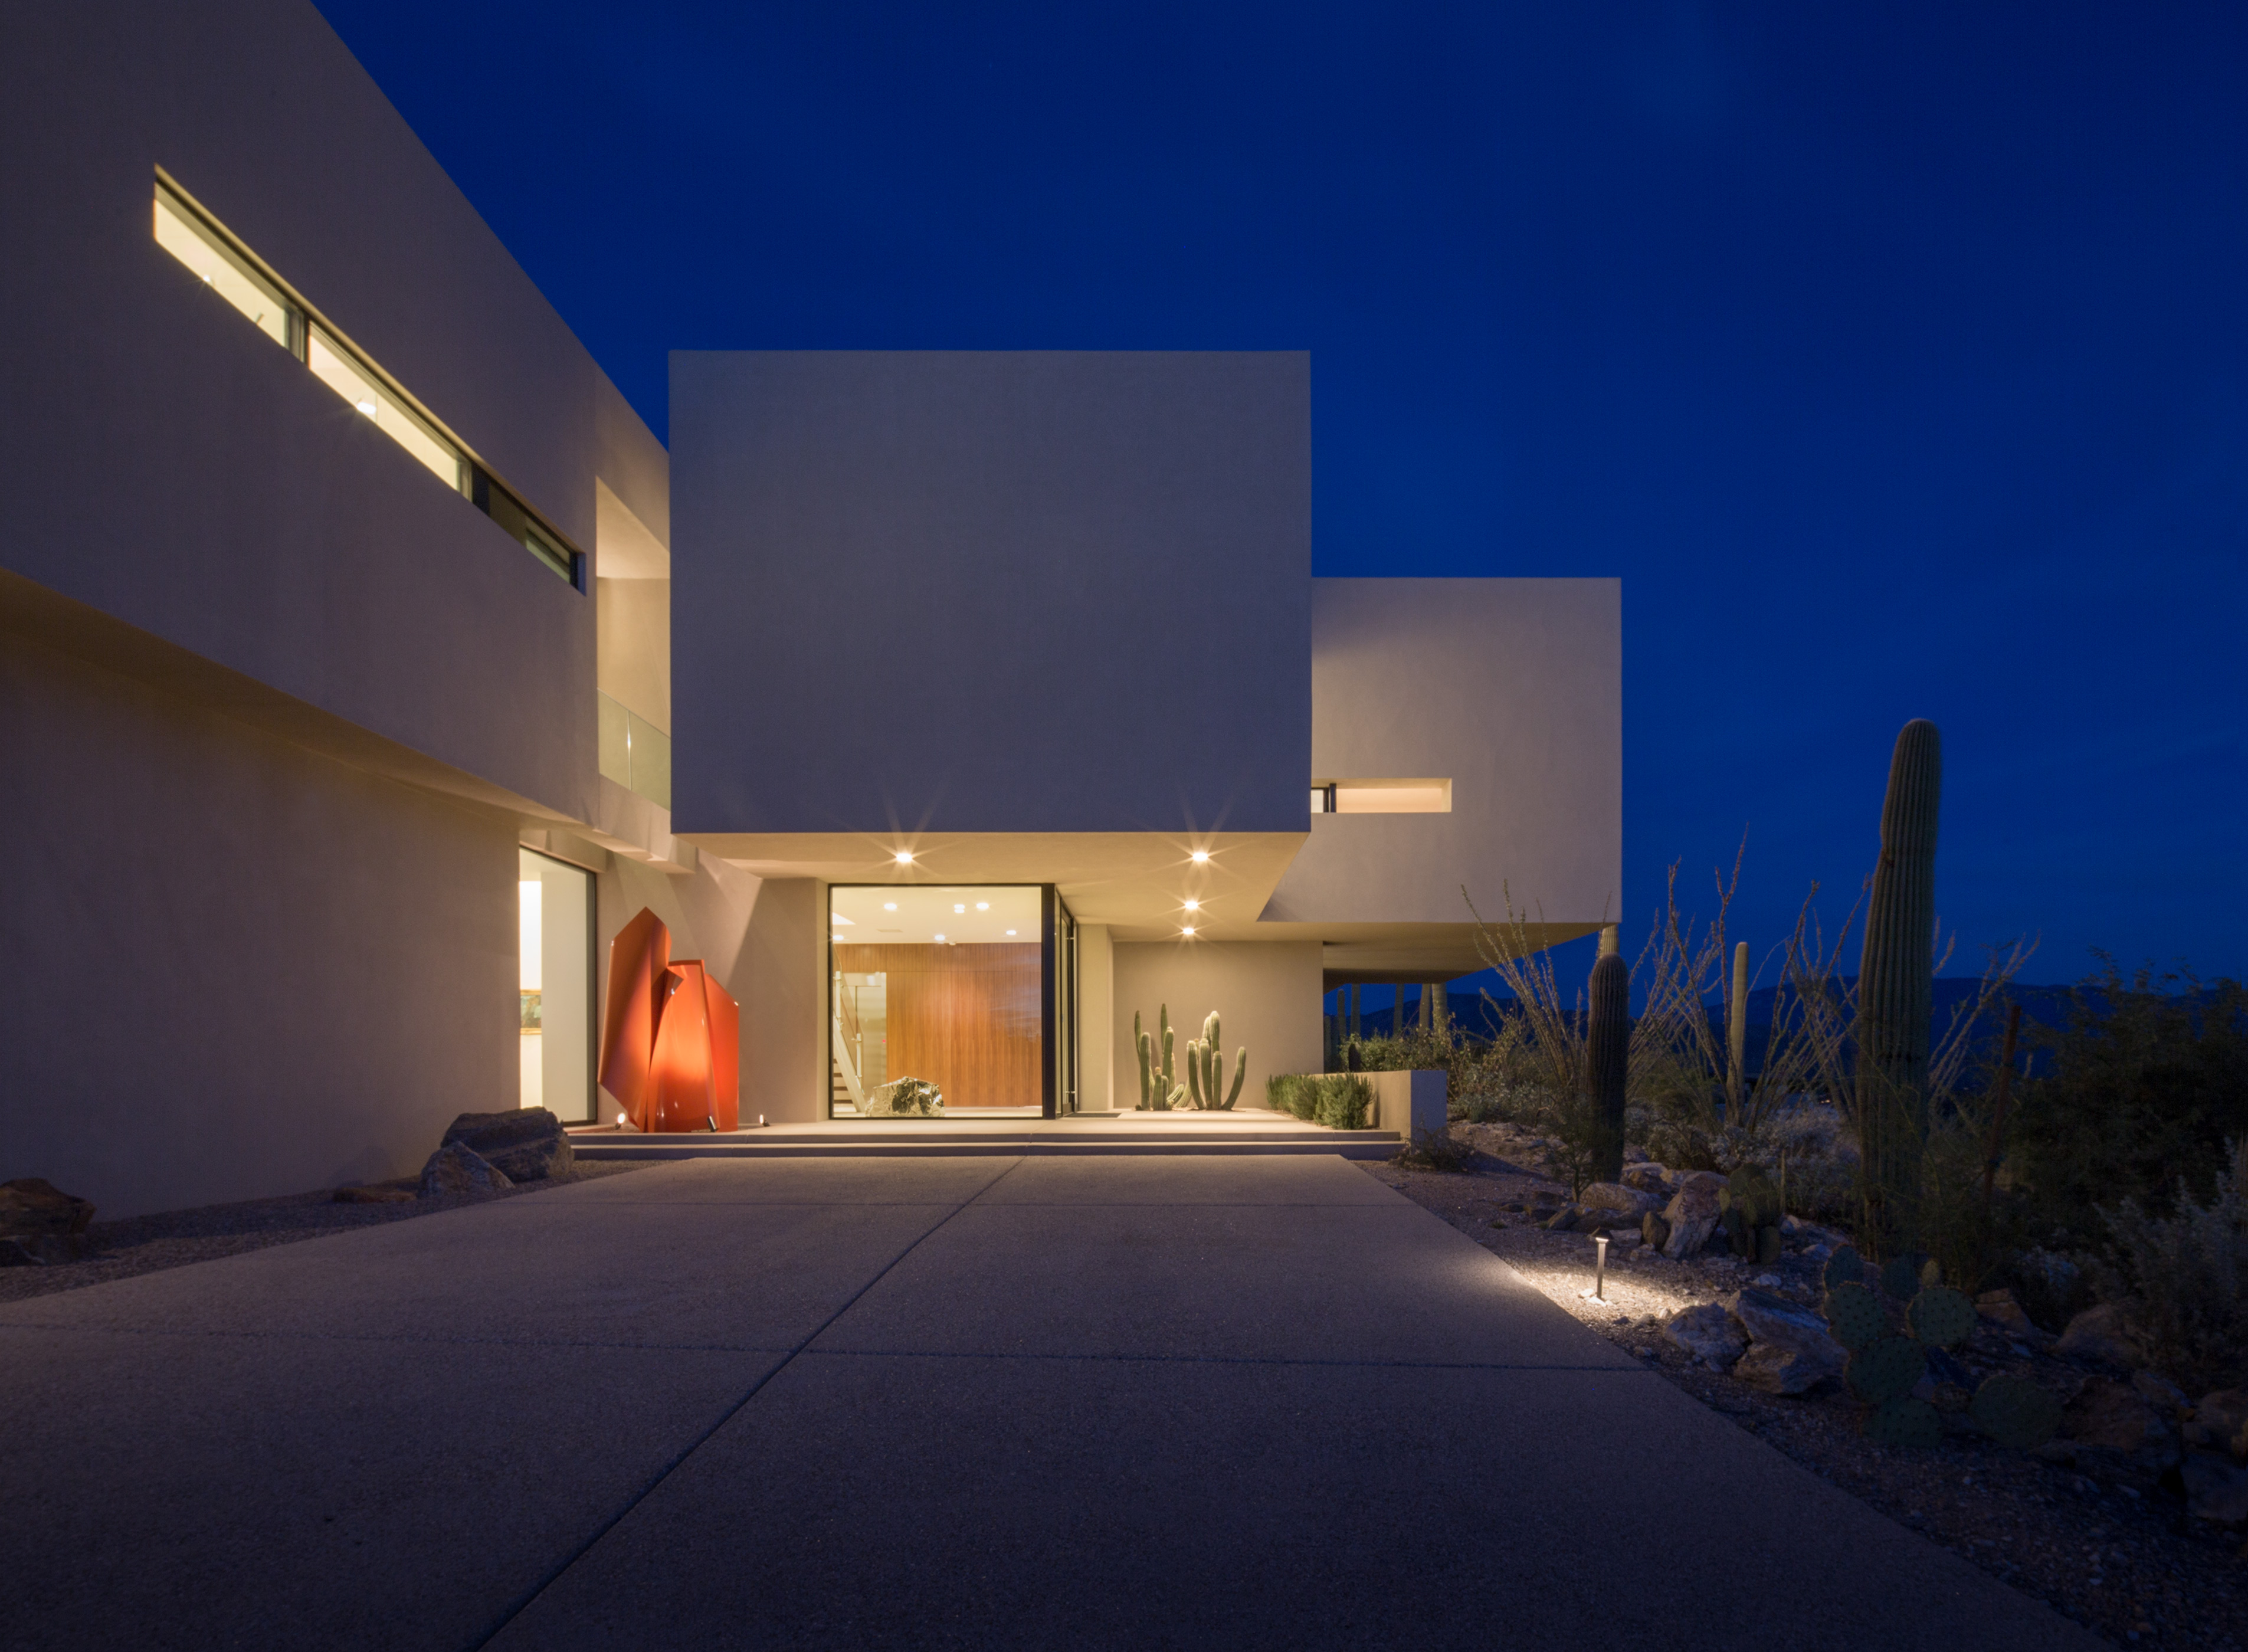 Luxury home with architecture lights